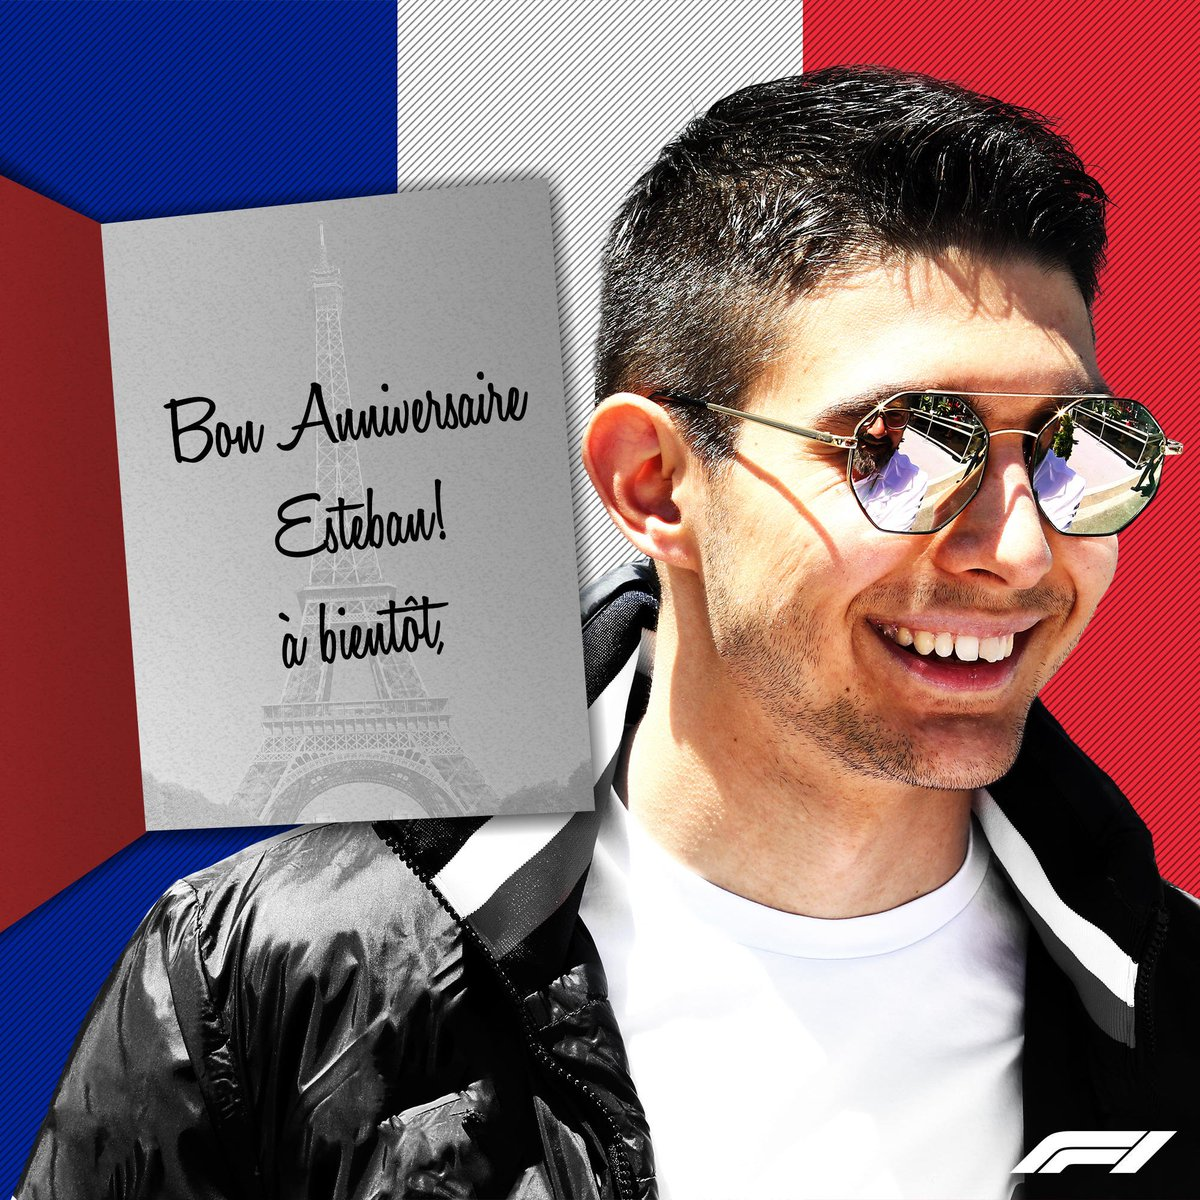 Bon anniversaire, @OconEsteban 🎂  We'll celebrate with you on the #F1 grid next year 🎉